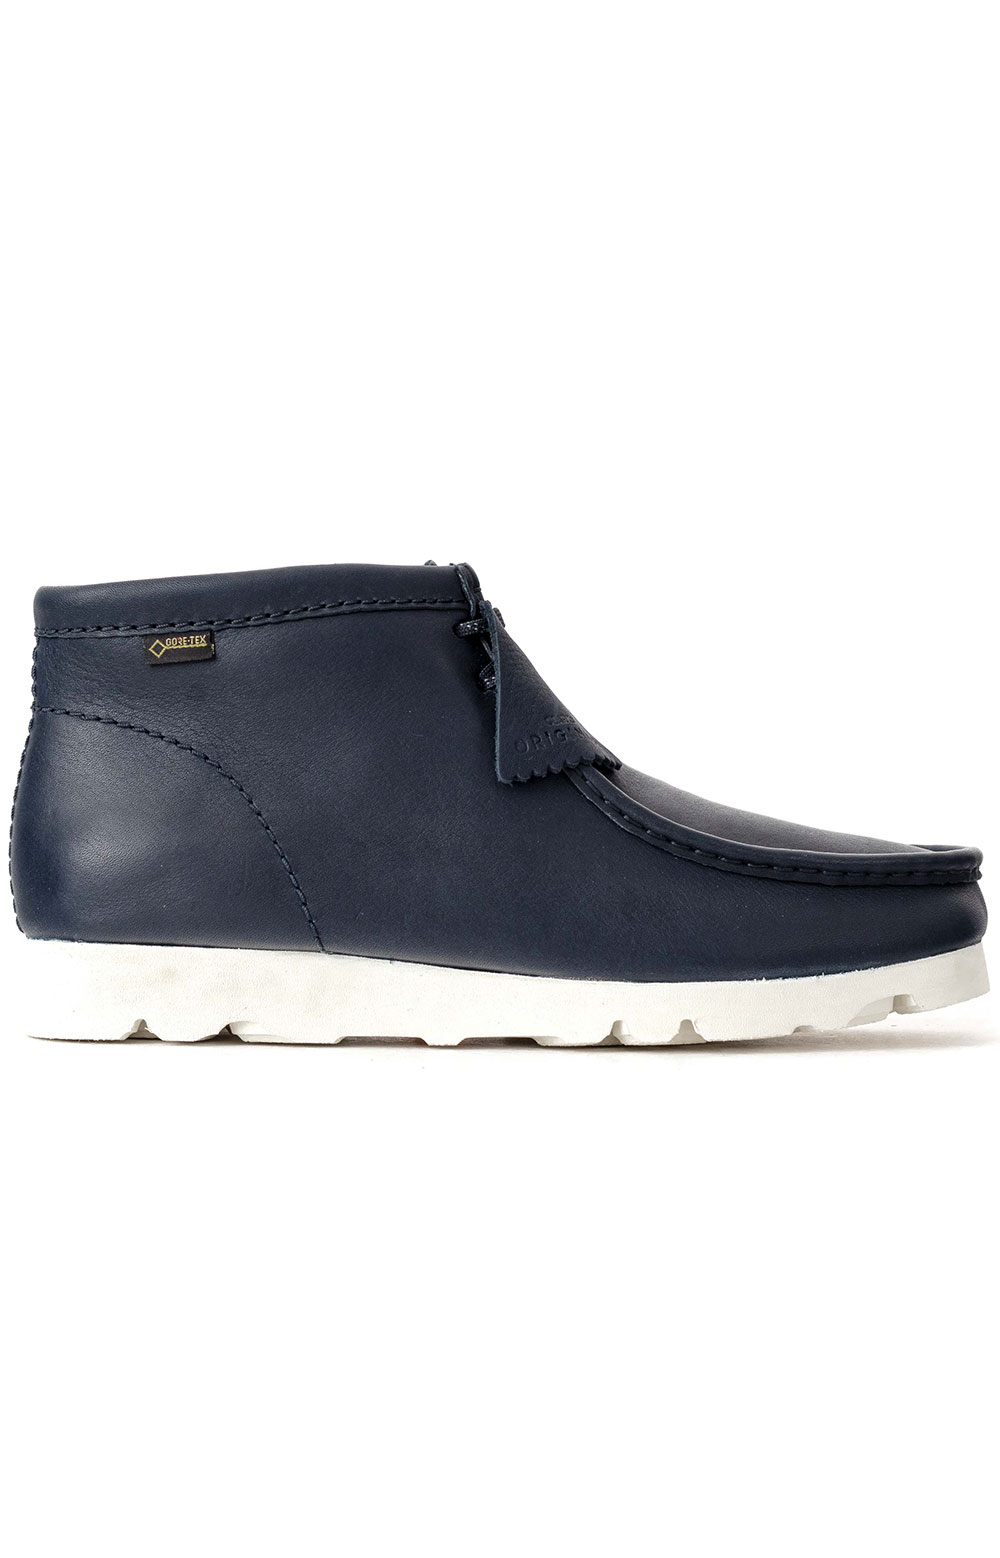 (26144519) Wallabee Boot Gore-Tex  - Ink Heather